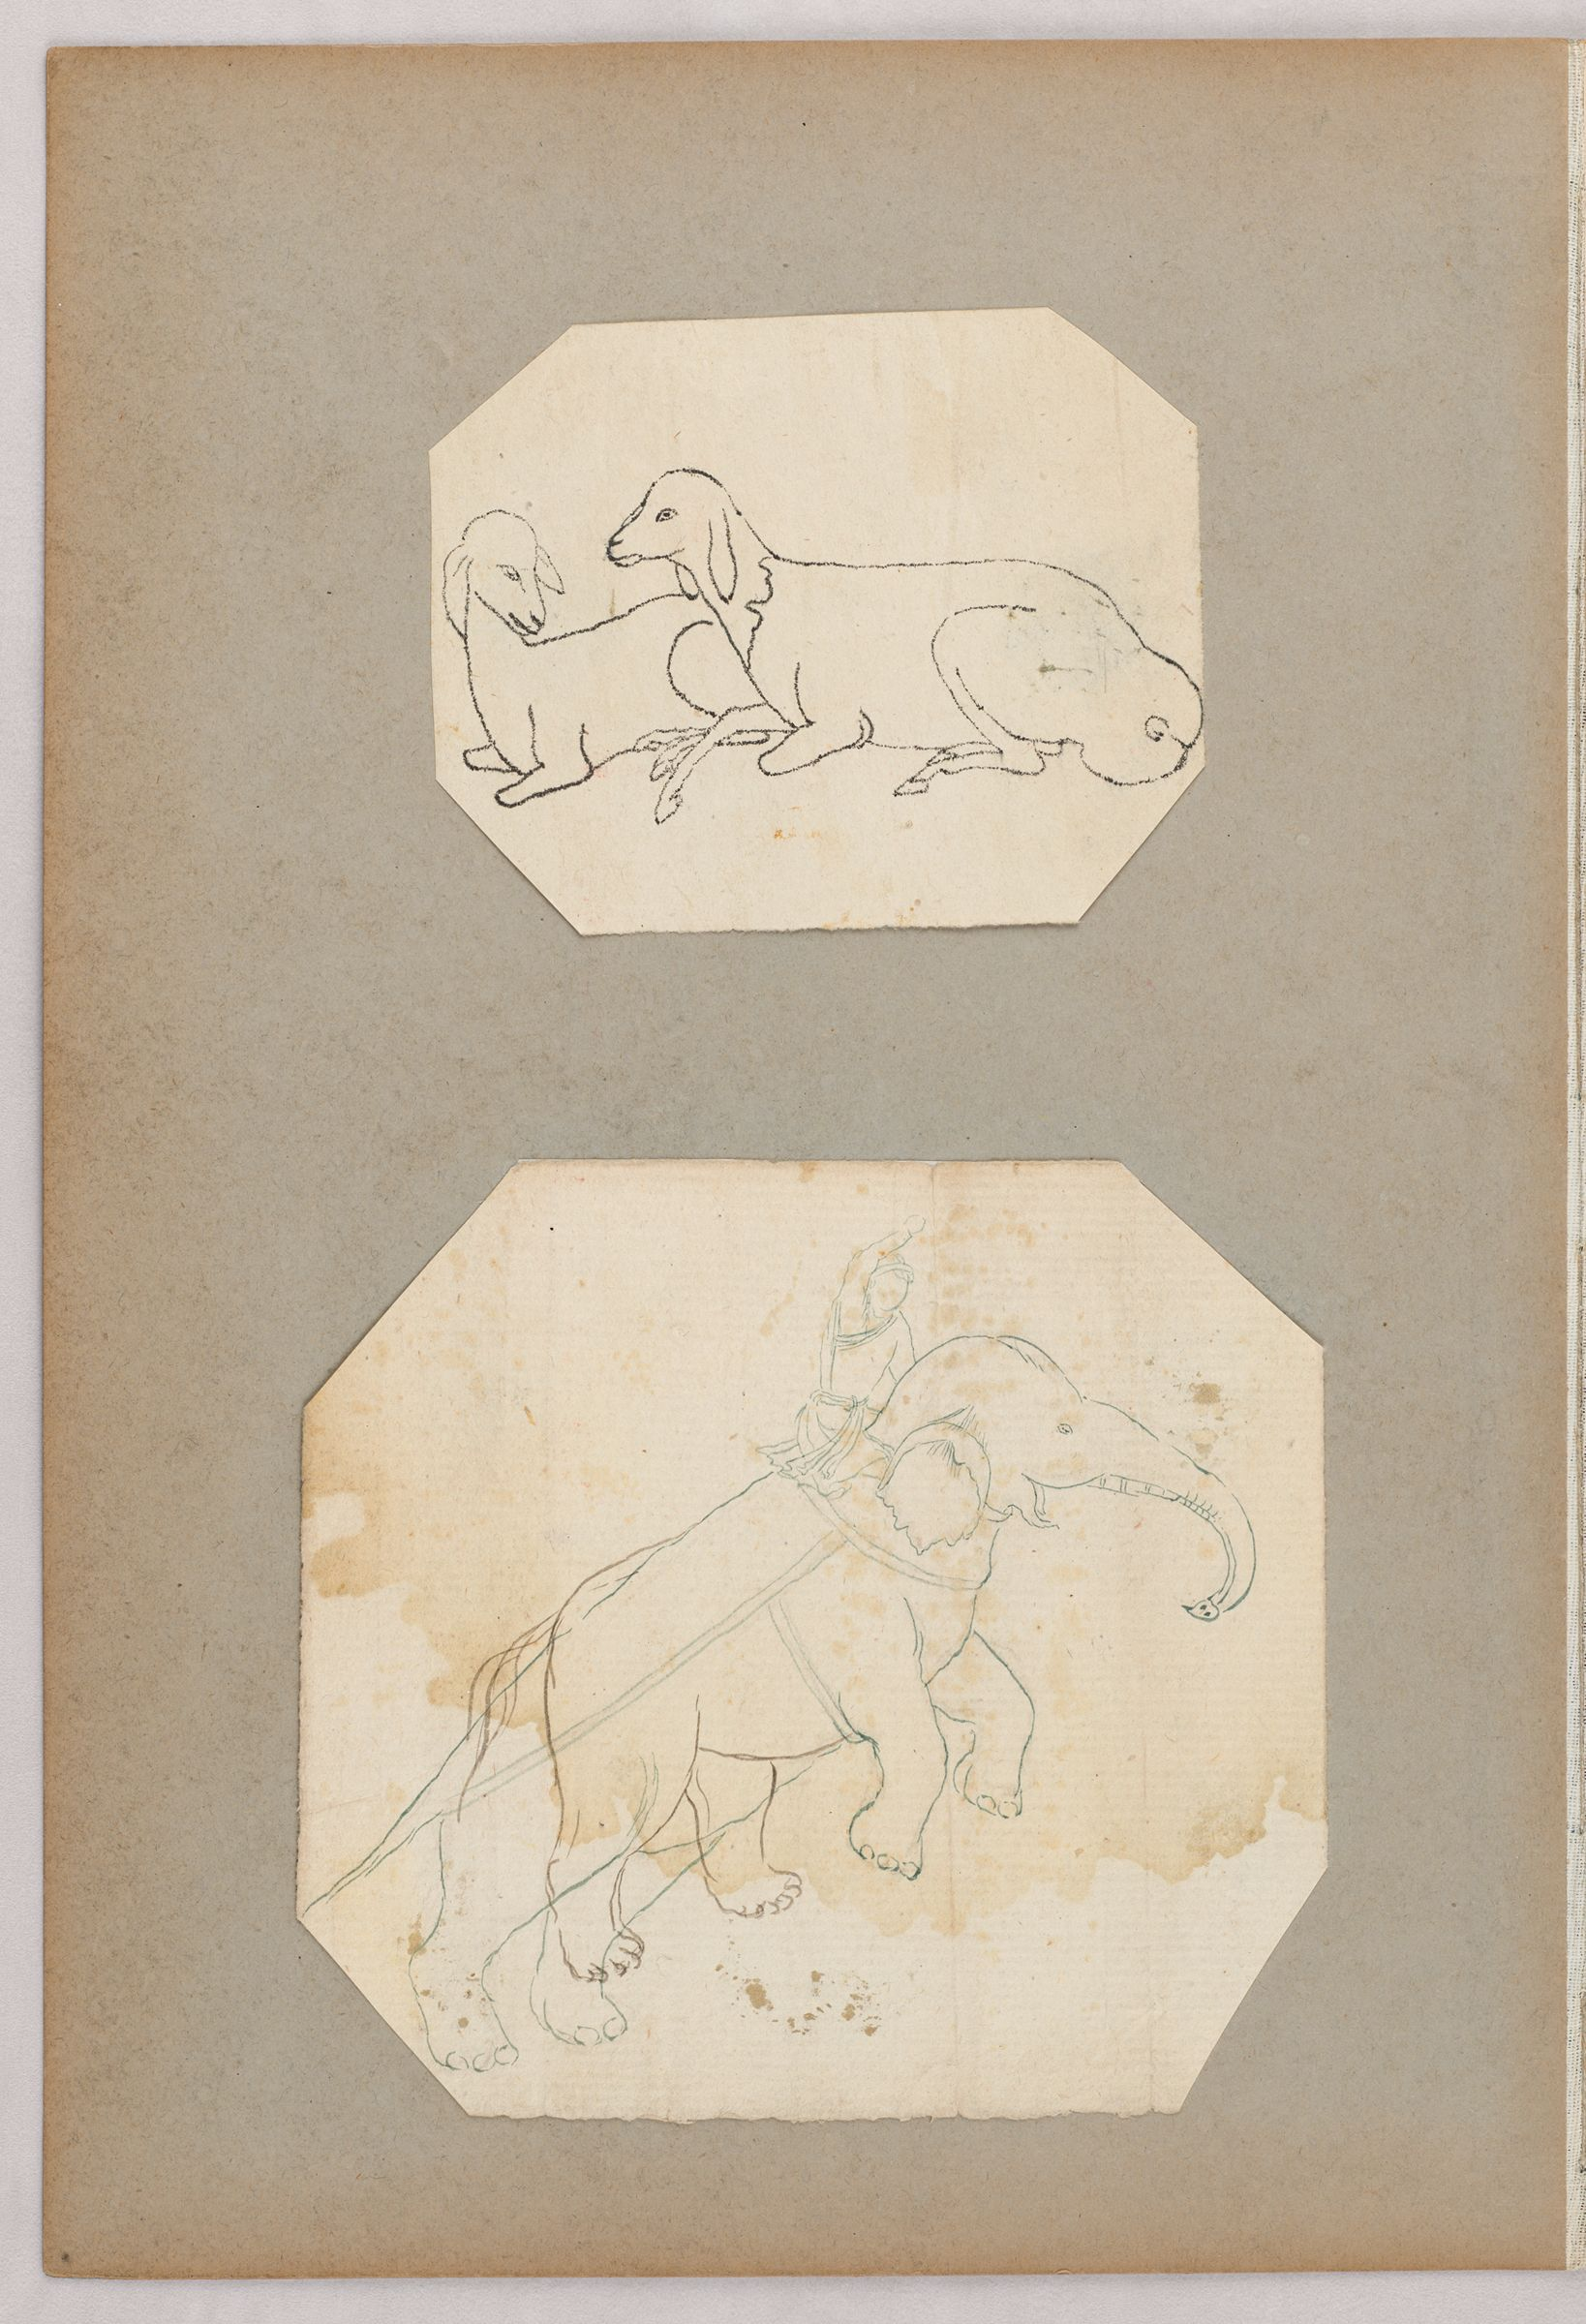 Folio 35 From An Album Of Drawings And Paintings: Two Sheets: Two Sheep; Elephant With Rider In Indian Garb (Recto); Blank Page (Verso)